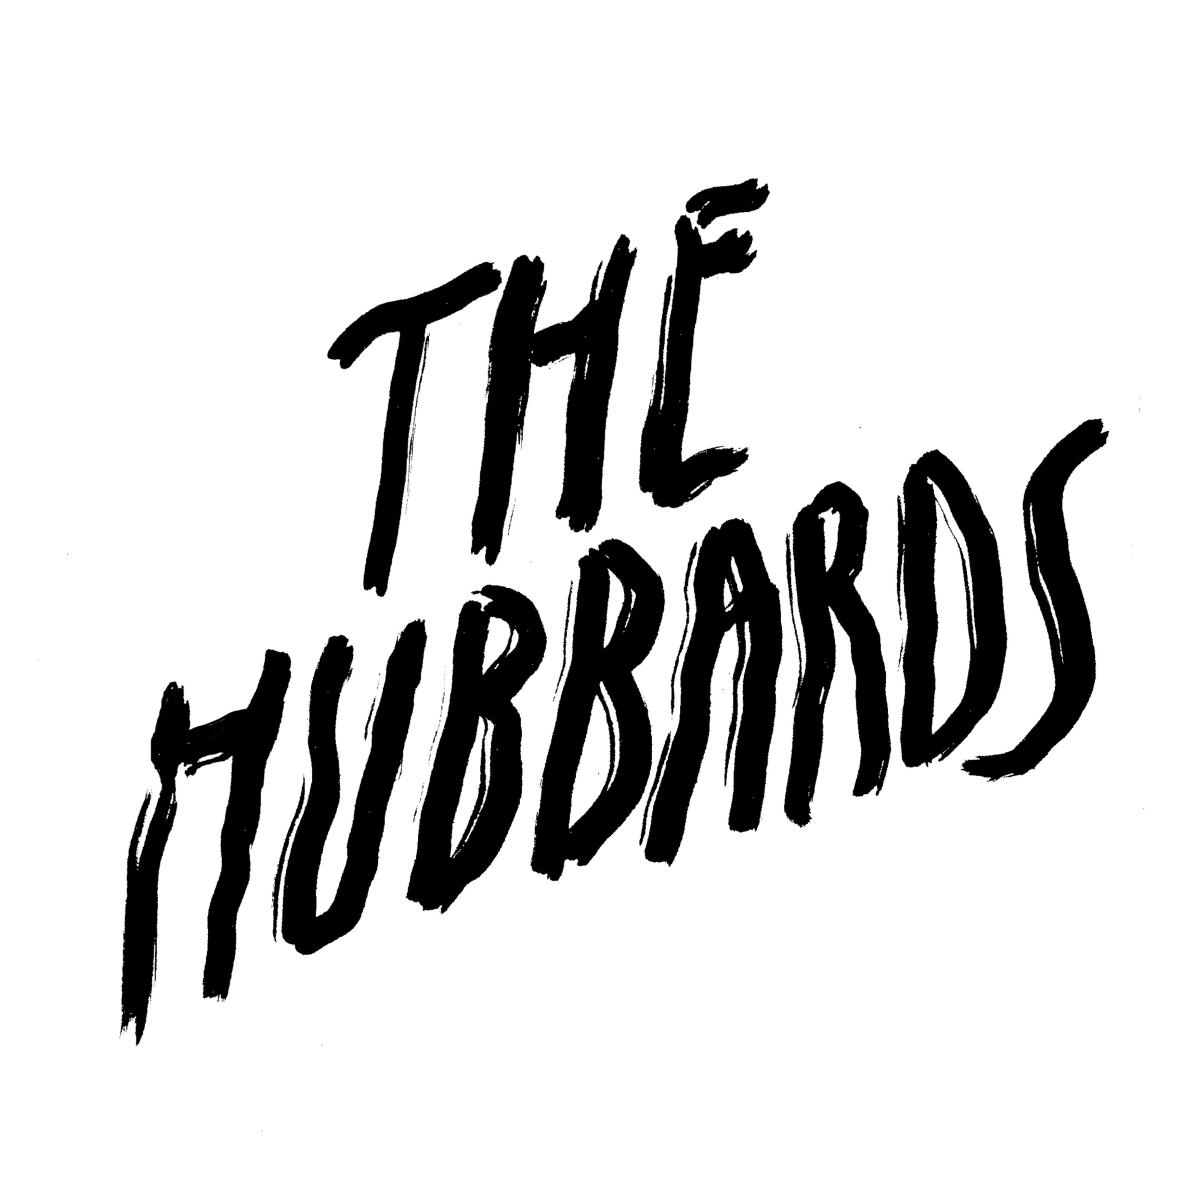 The Hubbards – 'Easy Go' SingleReview